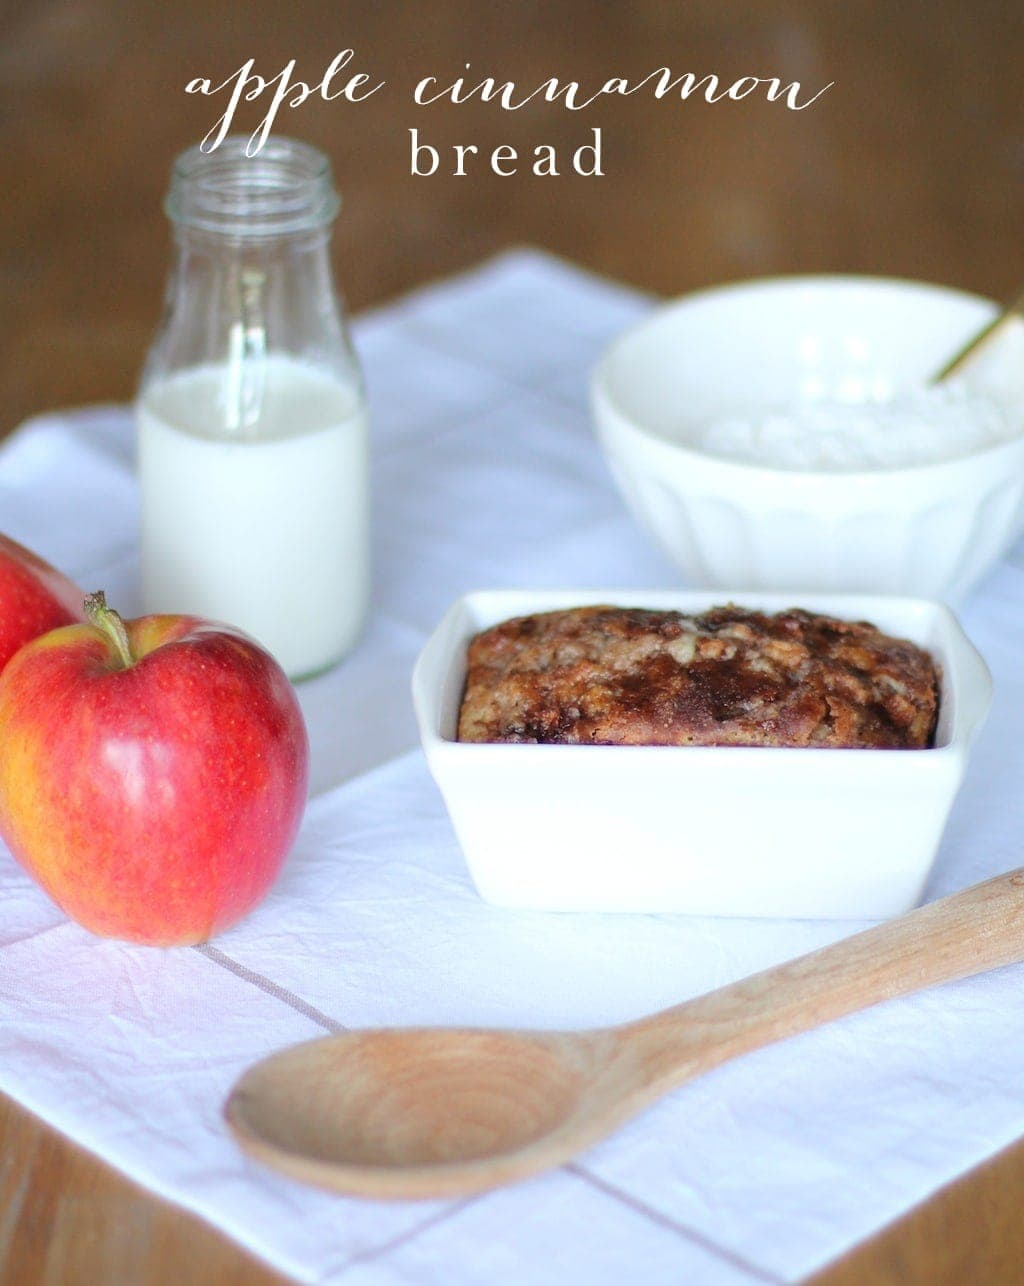 10 Minute Cinnamon Apple Bread - Beautiful hostess or housewarming gift. Yields 6 loaves!